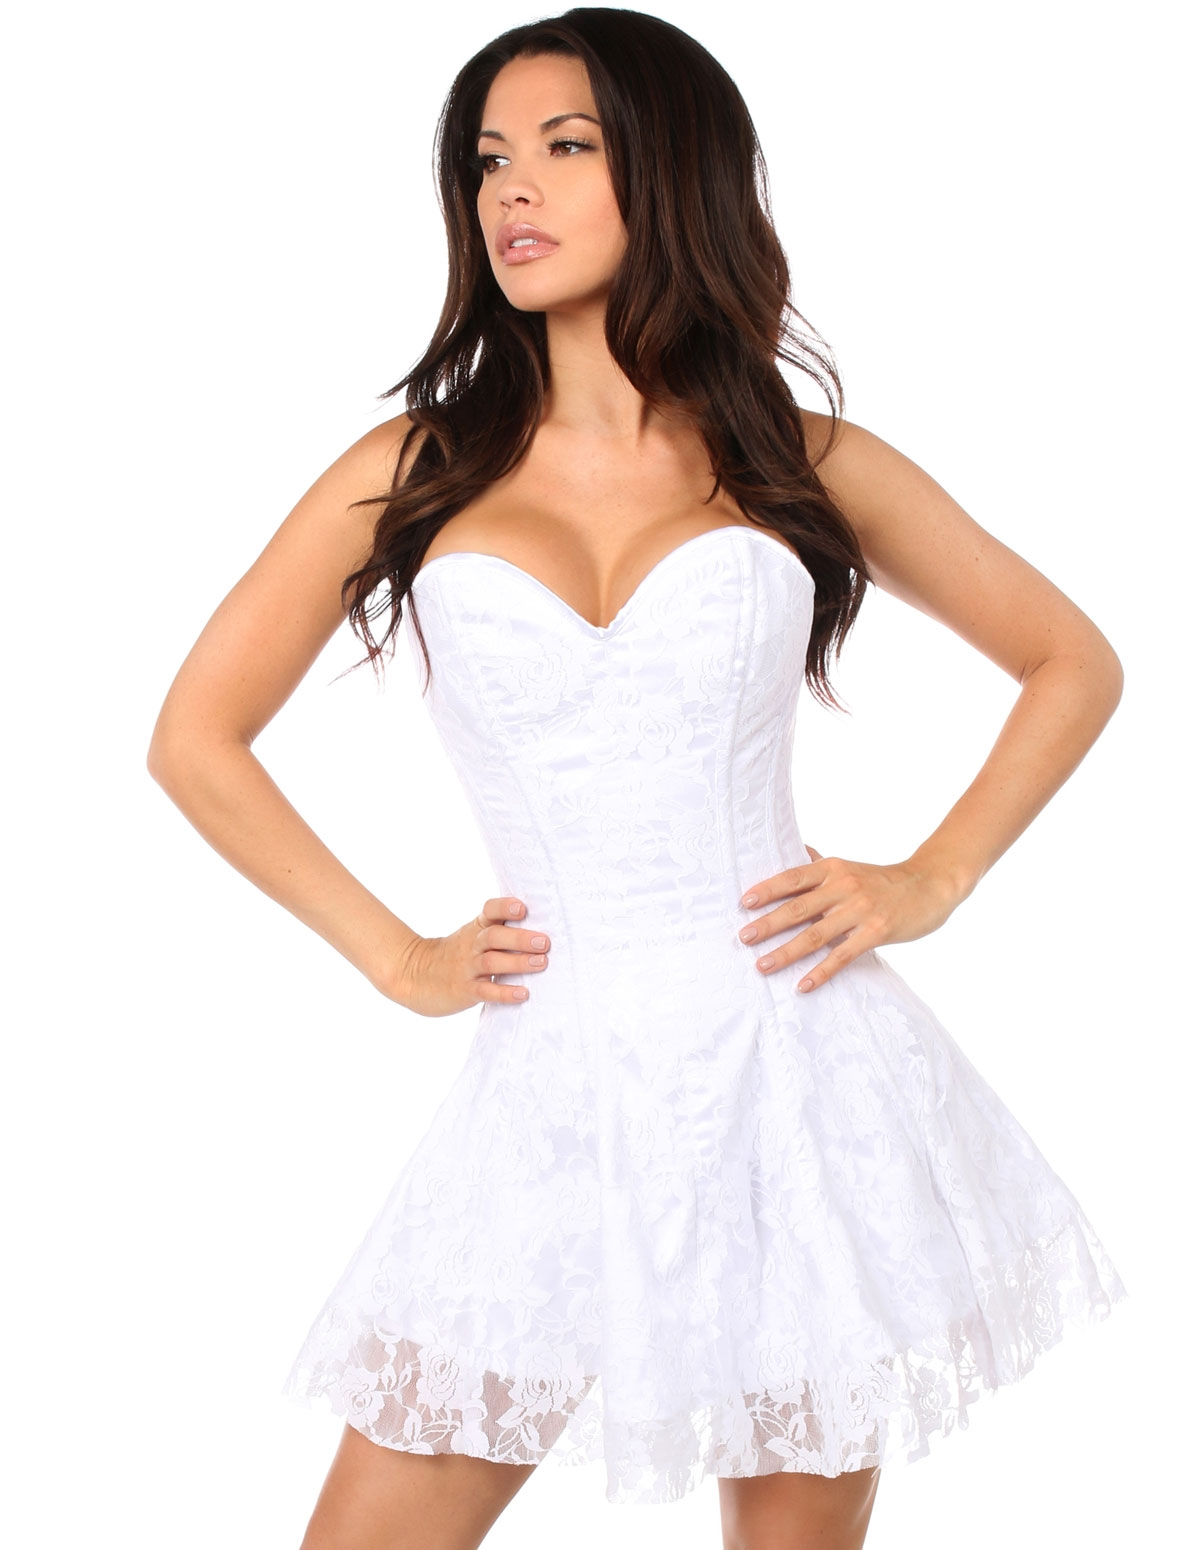 Lavish White Lace Corset Plus Size Dress